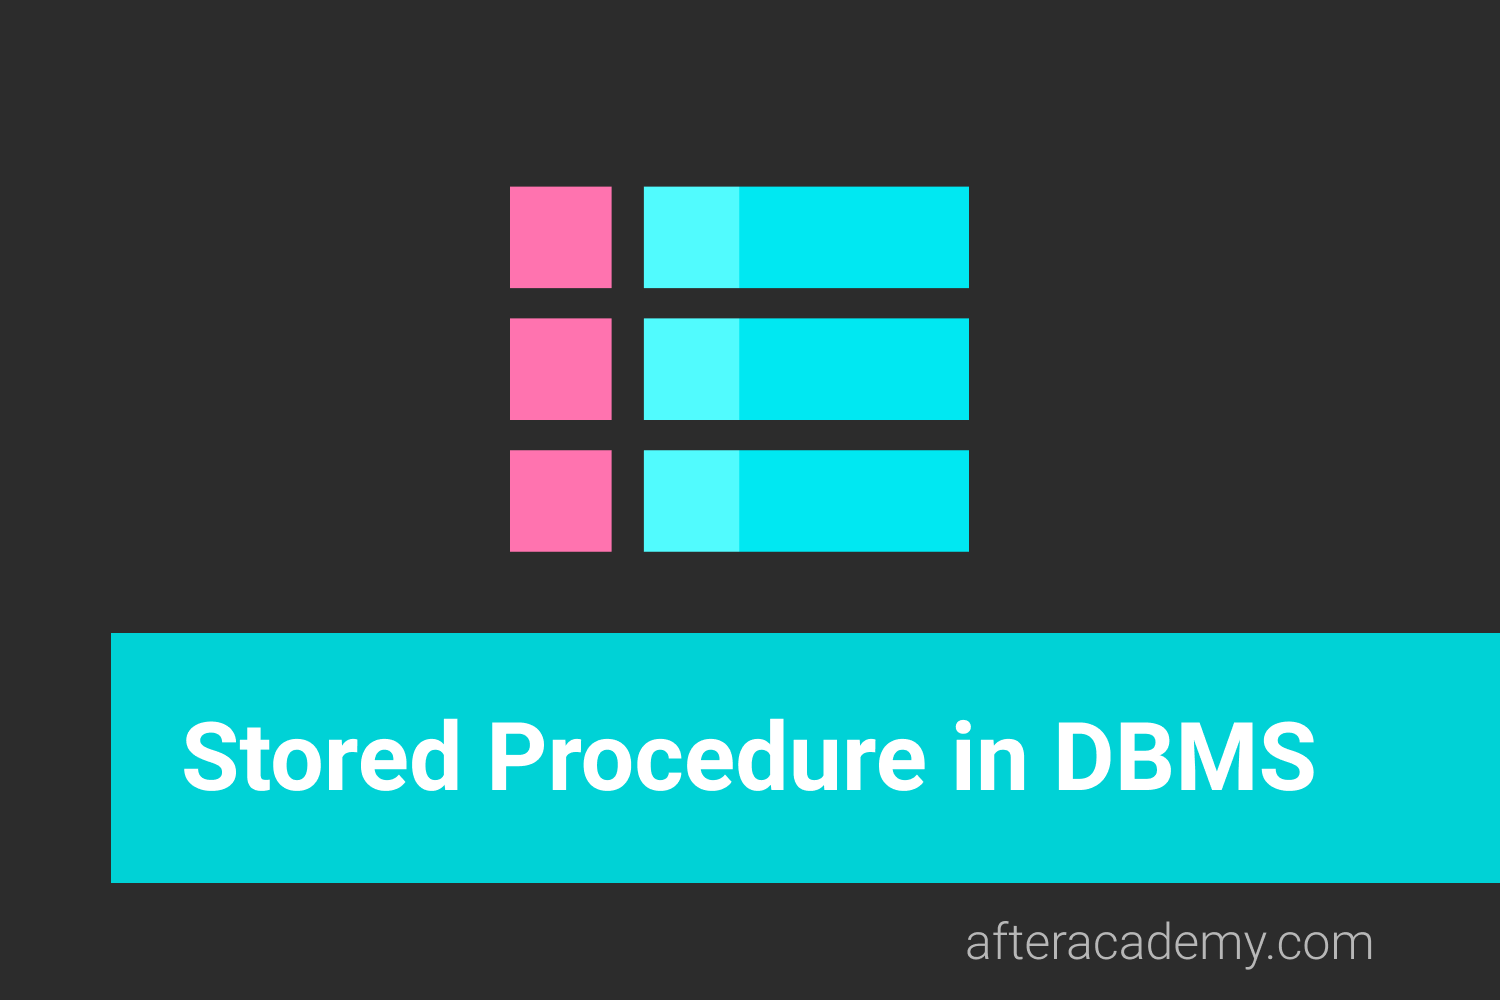 What is a Stored Procedure in DBMS?